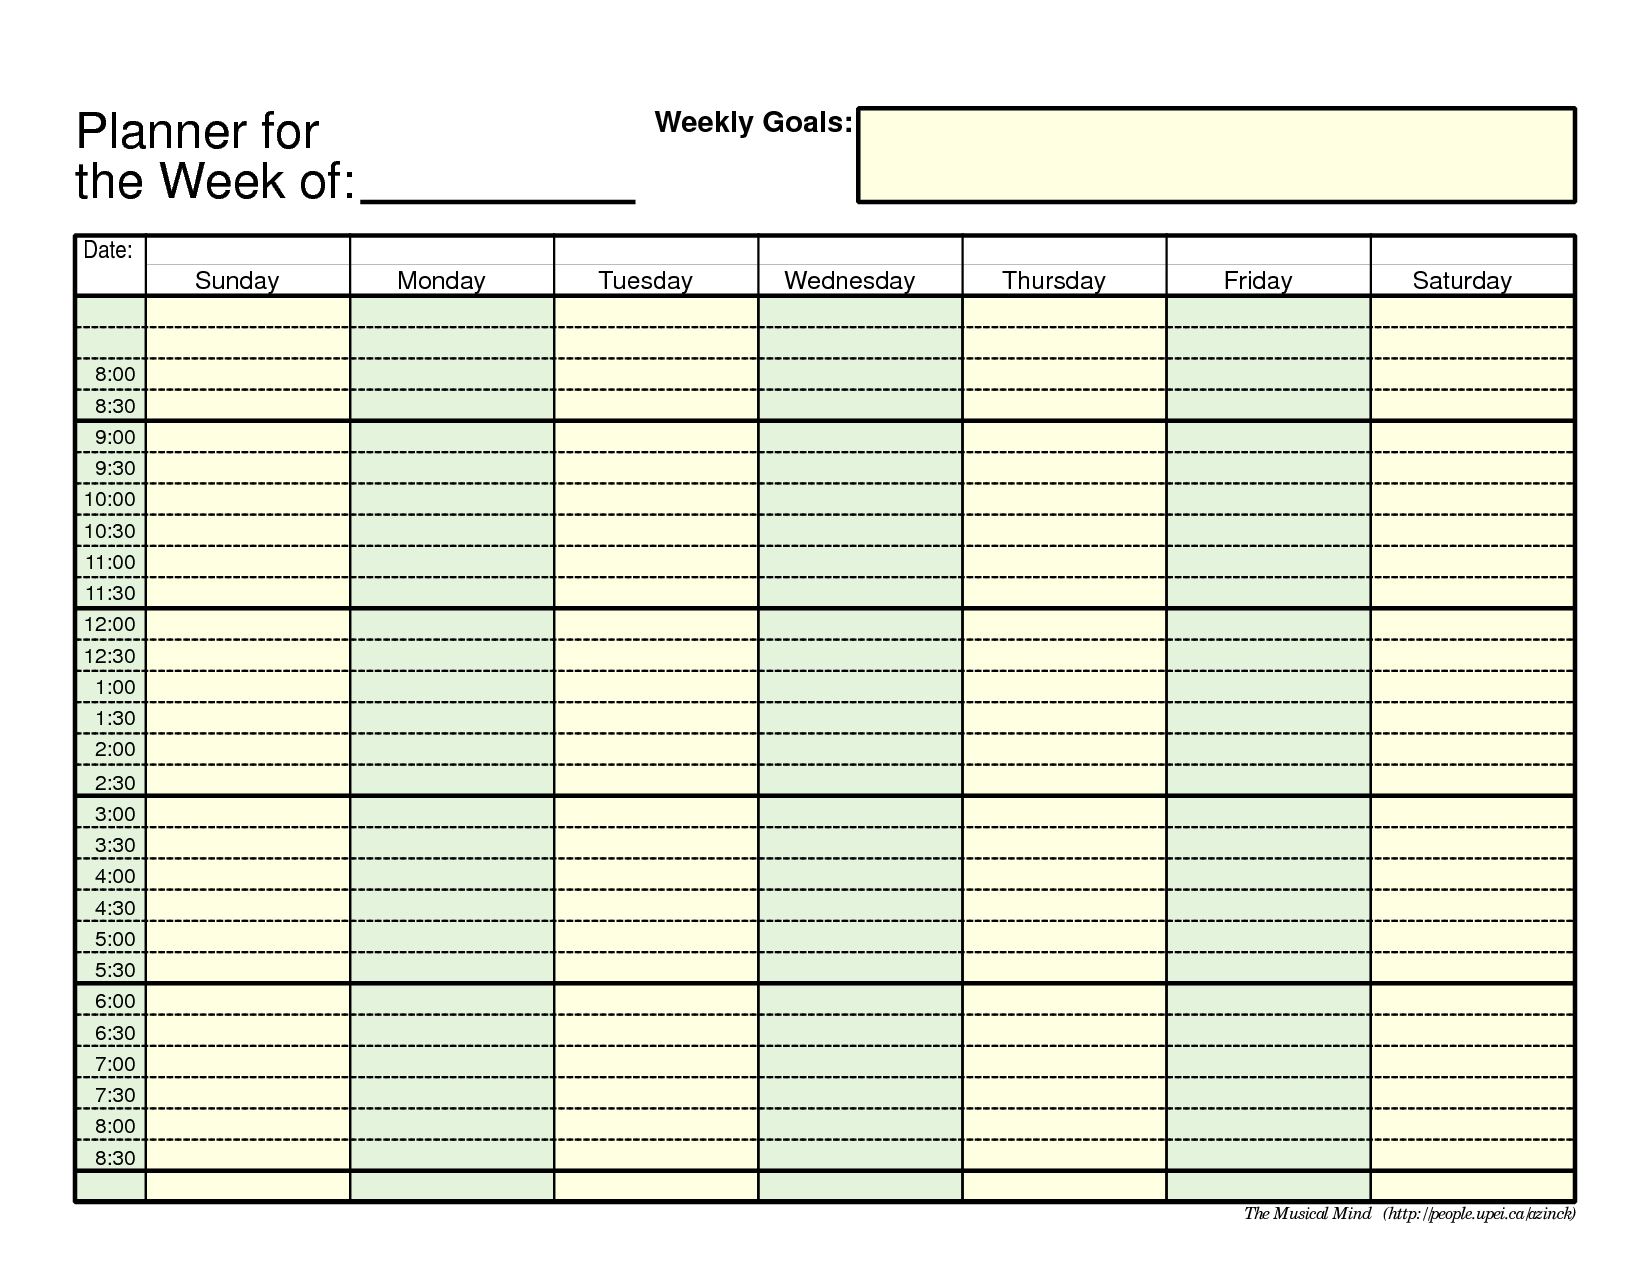 Printable Weekly Planner Template | Weekly Planner Printable intended for Daily Planner With Time Slots